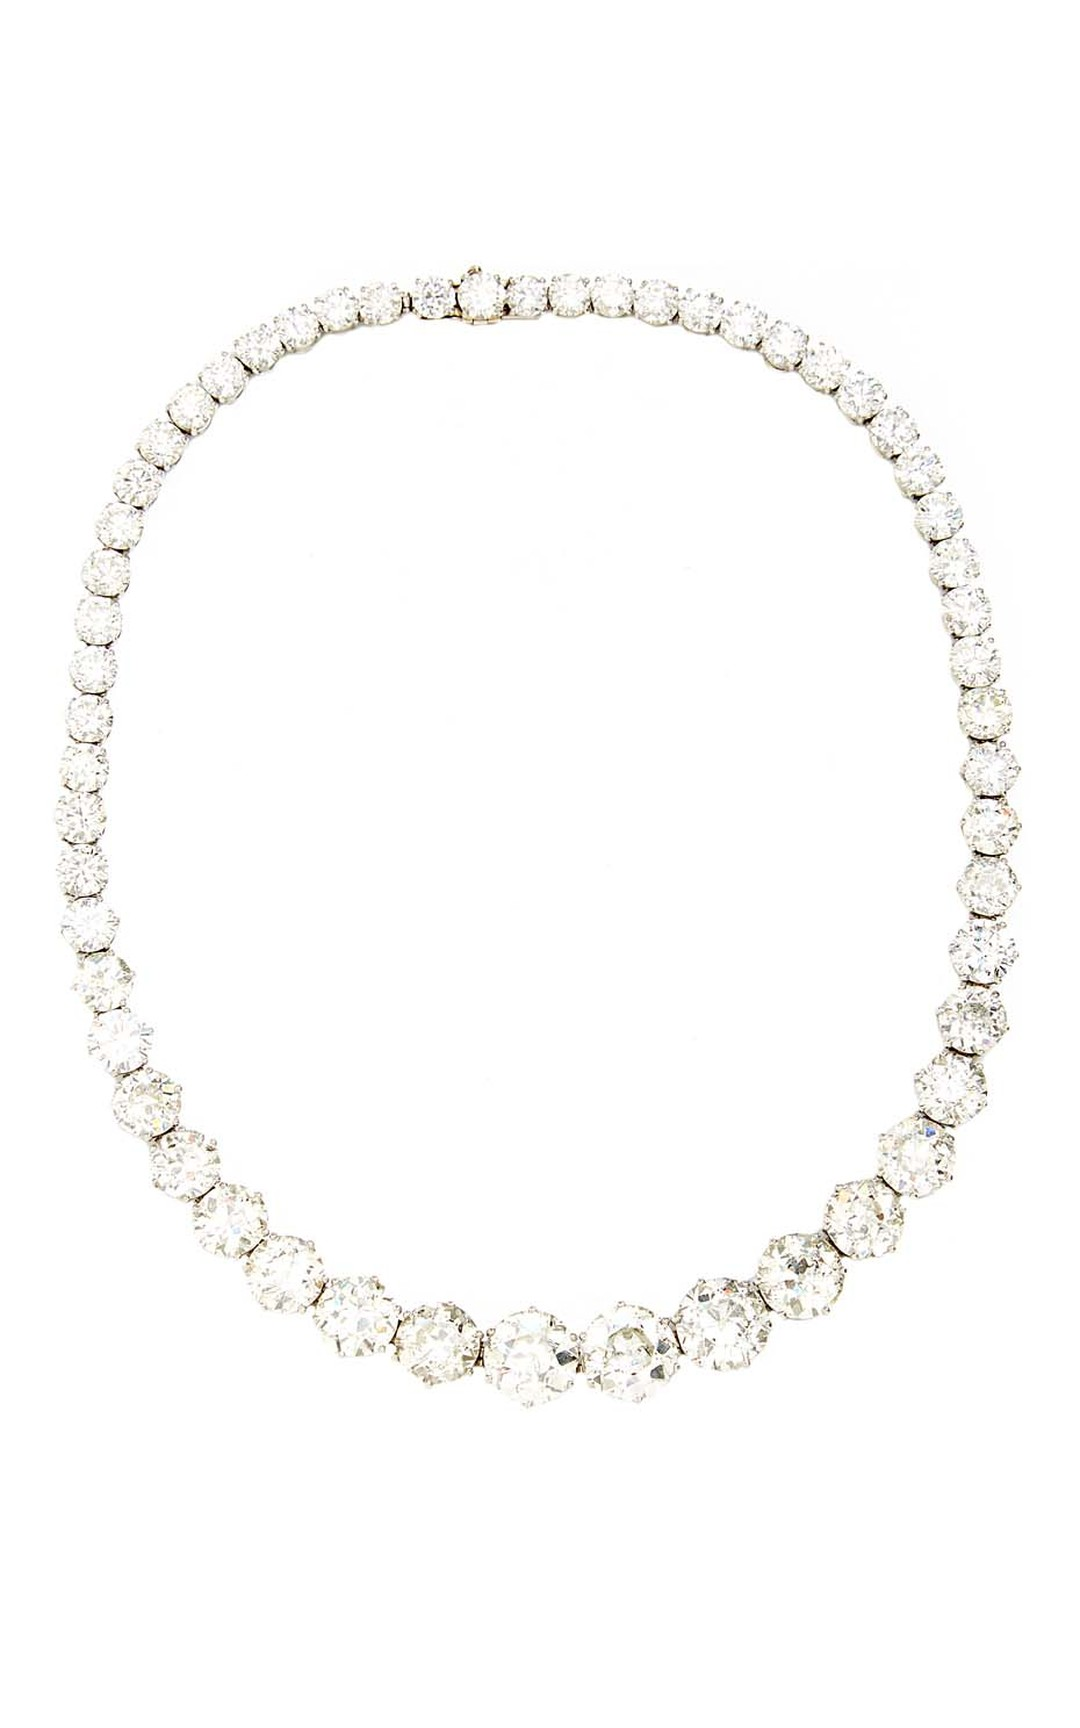 FD Gallery's Bulgari diamond and platinum necklace was commissioned in 1958. Designed rivière-style to appear like a single flowing stream of diamonds about the neck, it was made for Helene Propper de Callejón. $750,000 at Moda Operandi.